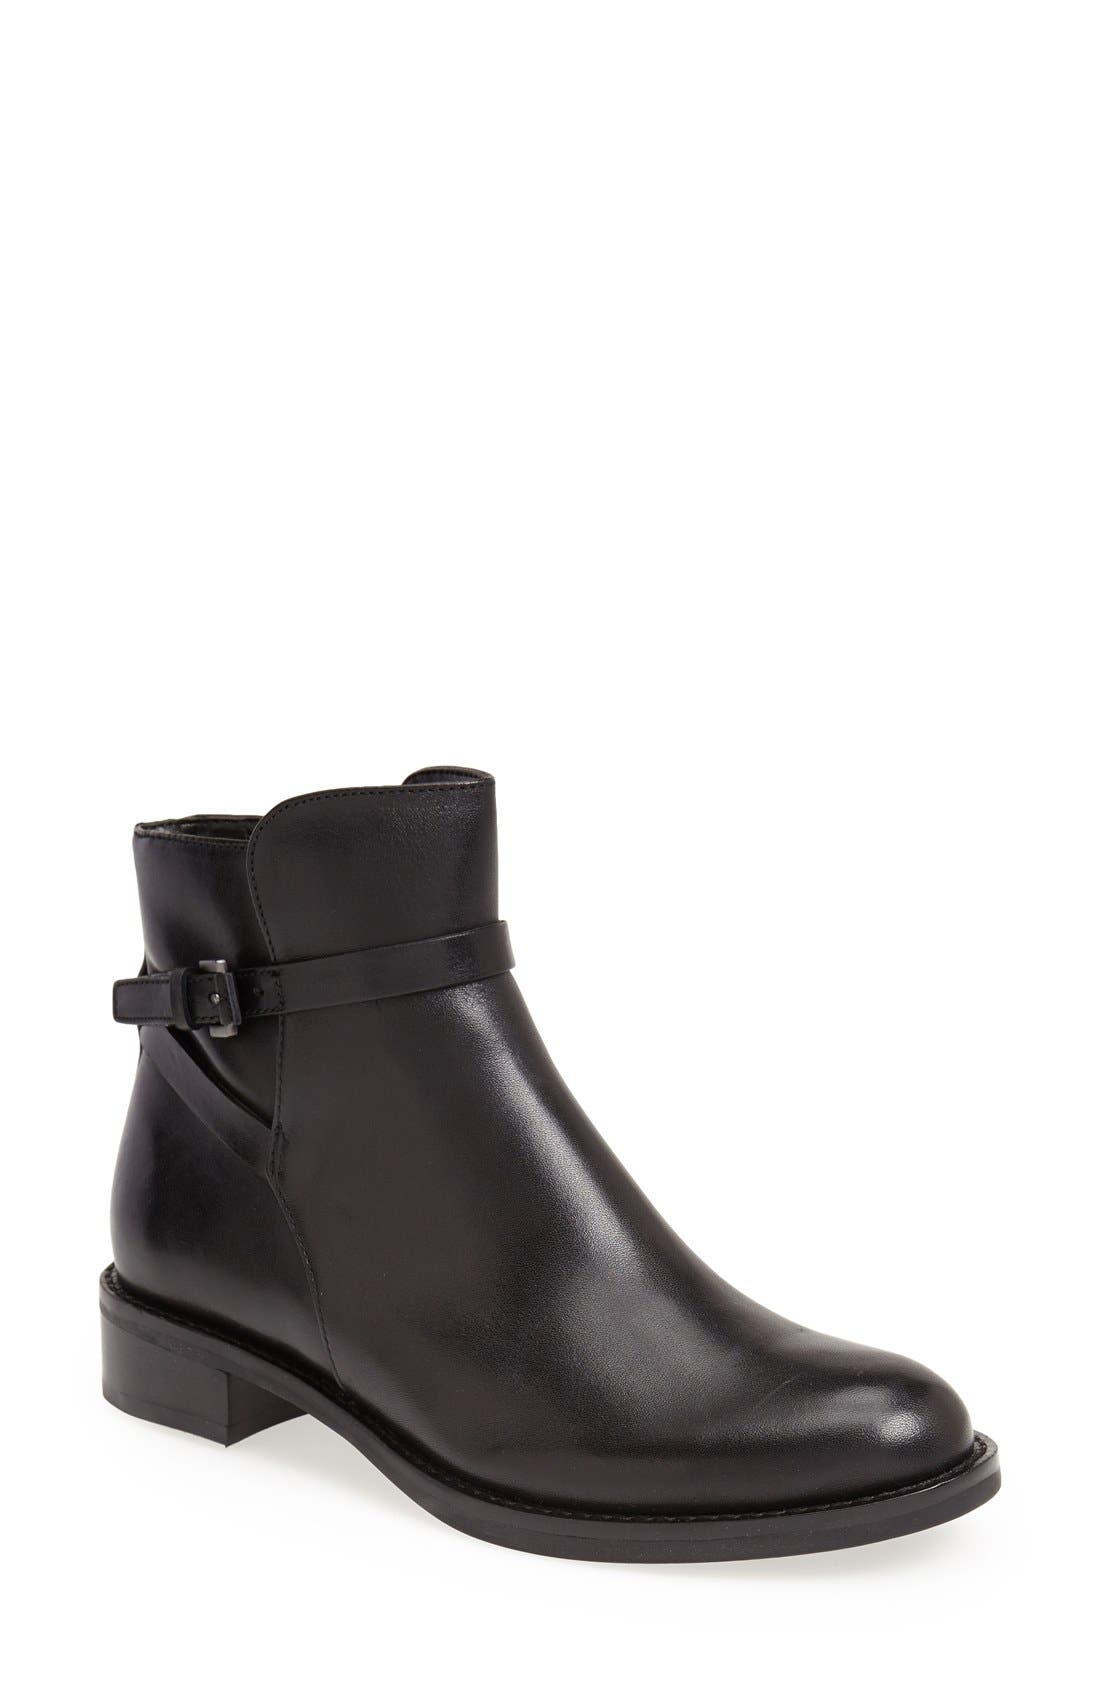 Main Image - ECCO 'Hobart Strap' Ankle Boot (Women)